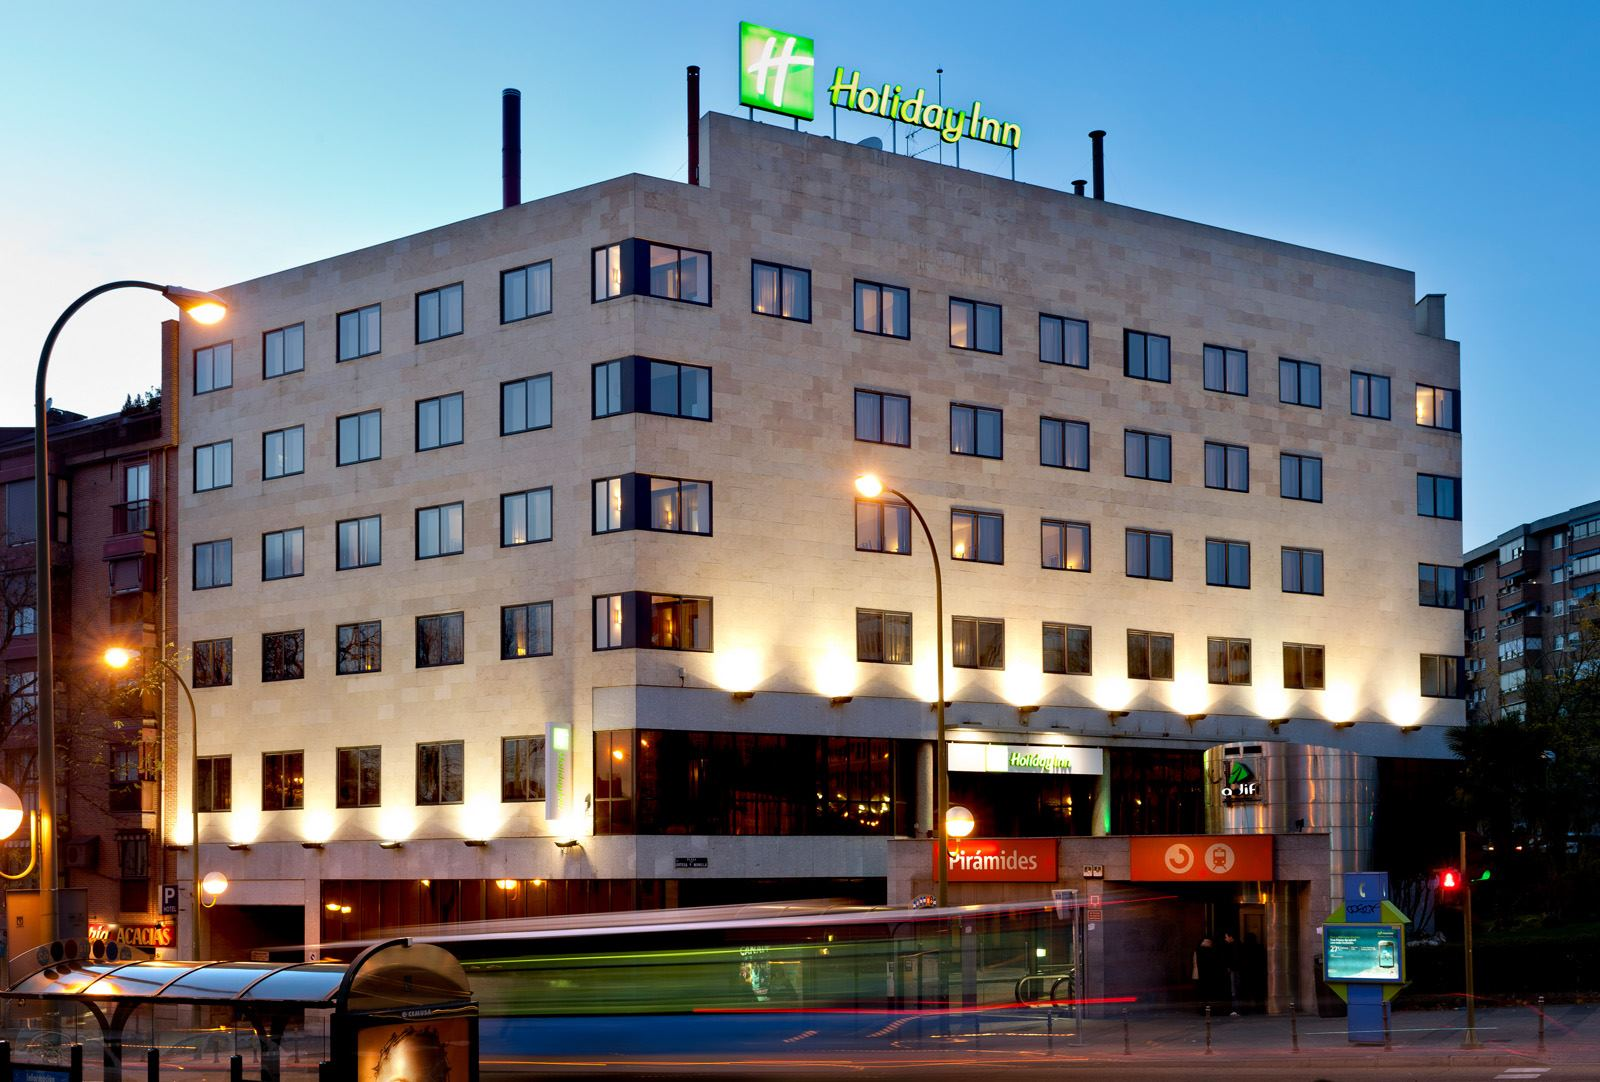 Holiday Inn Madrid Piramides - 1